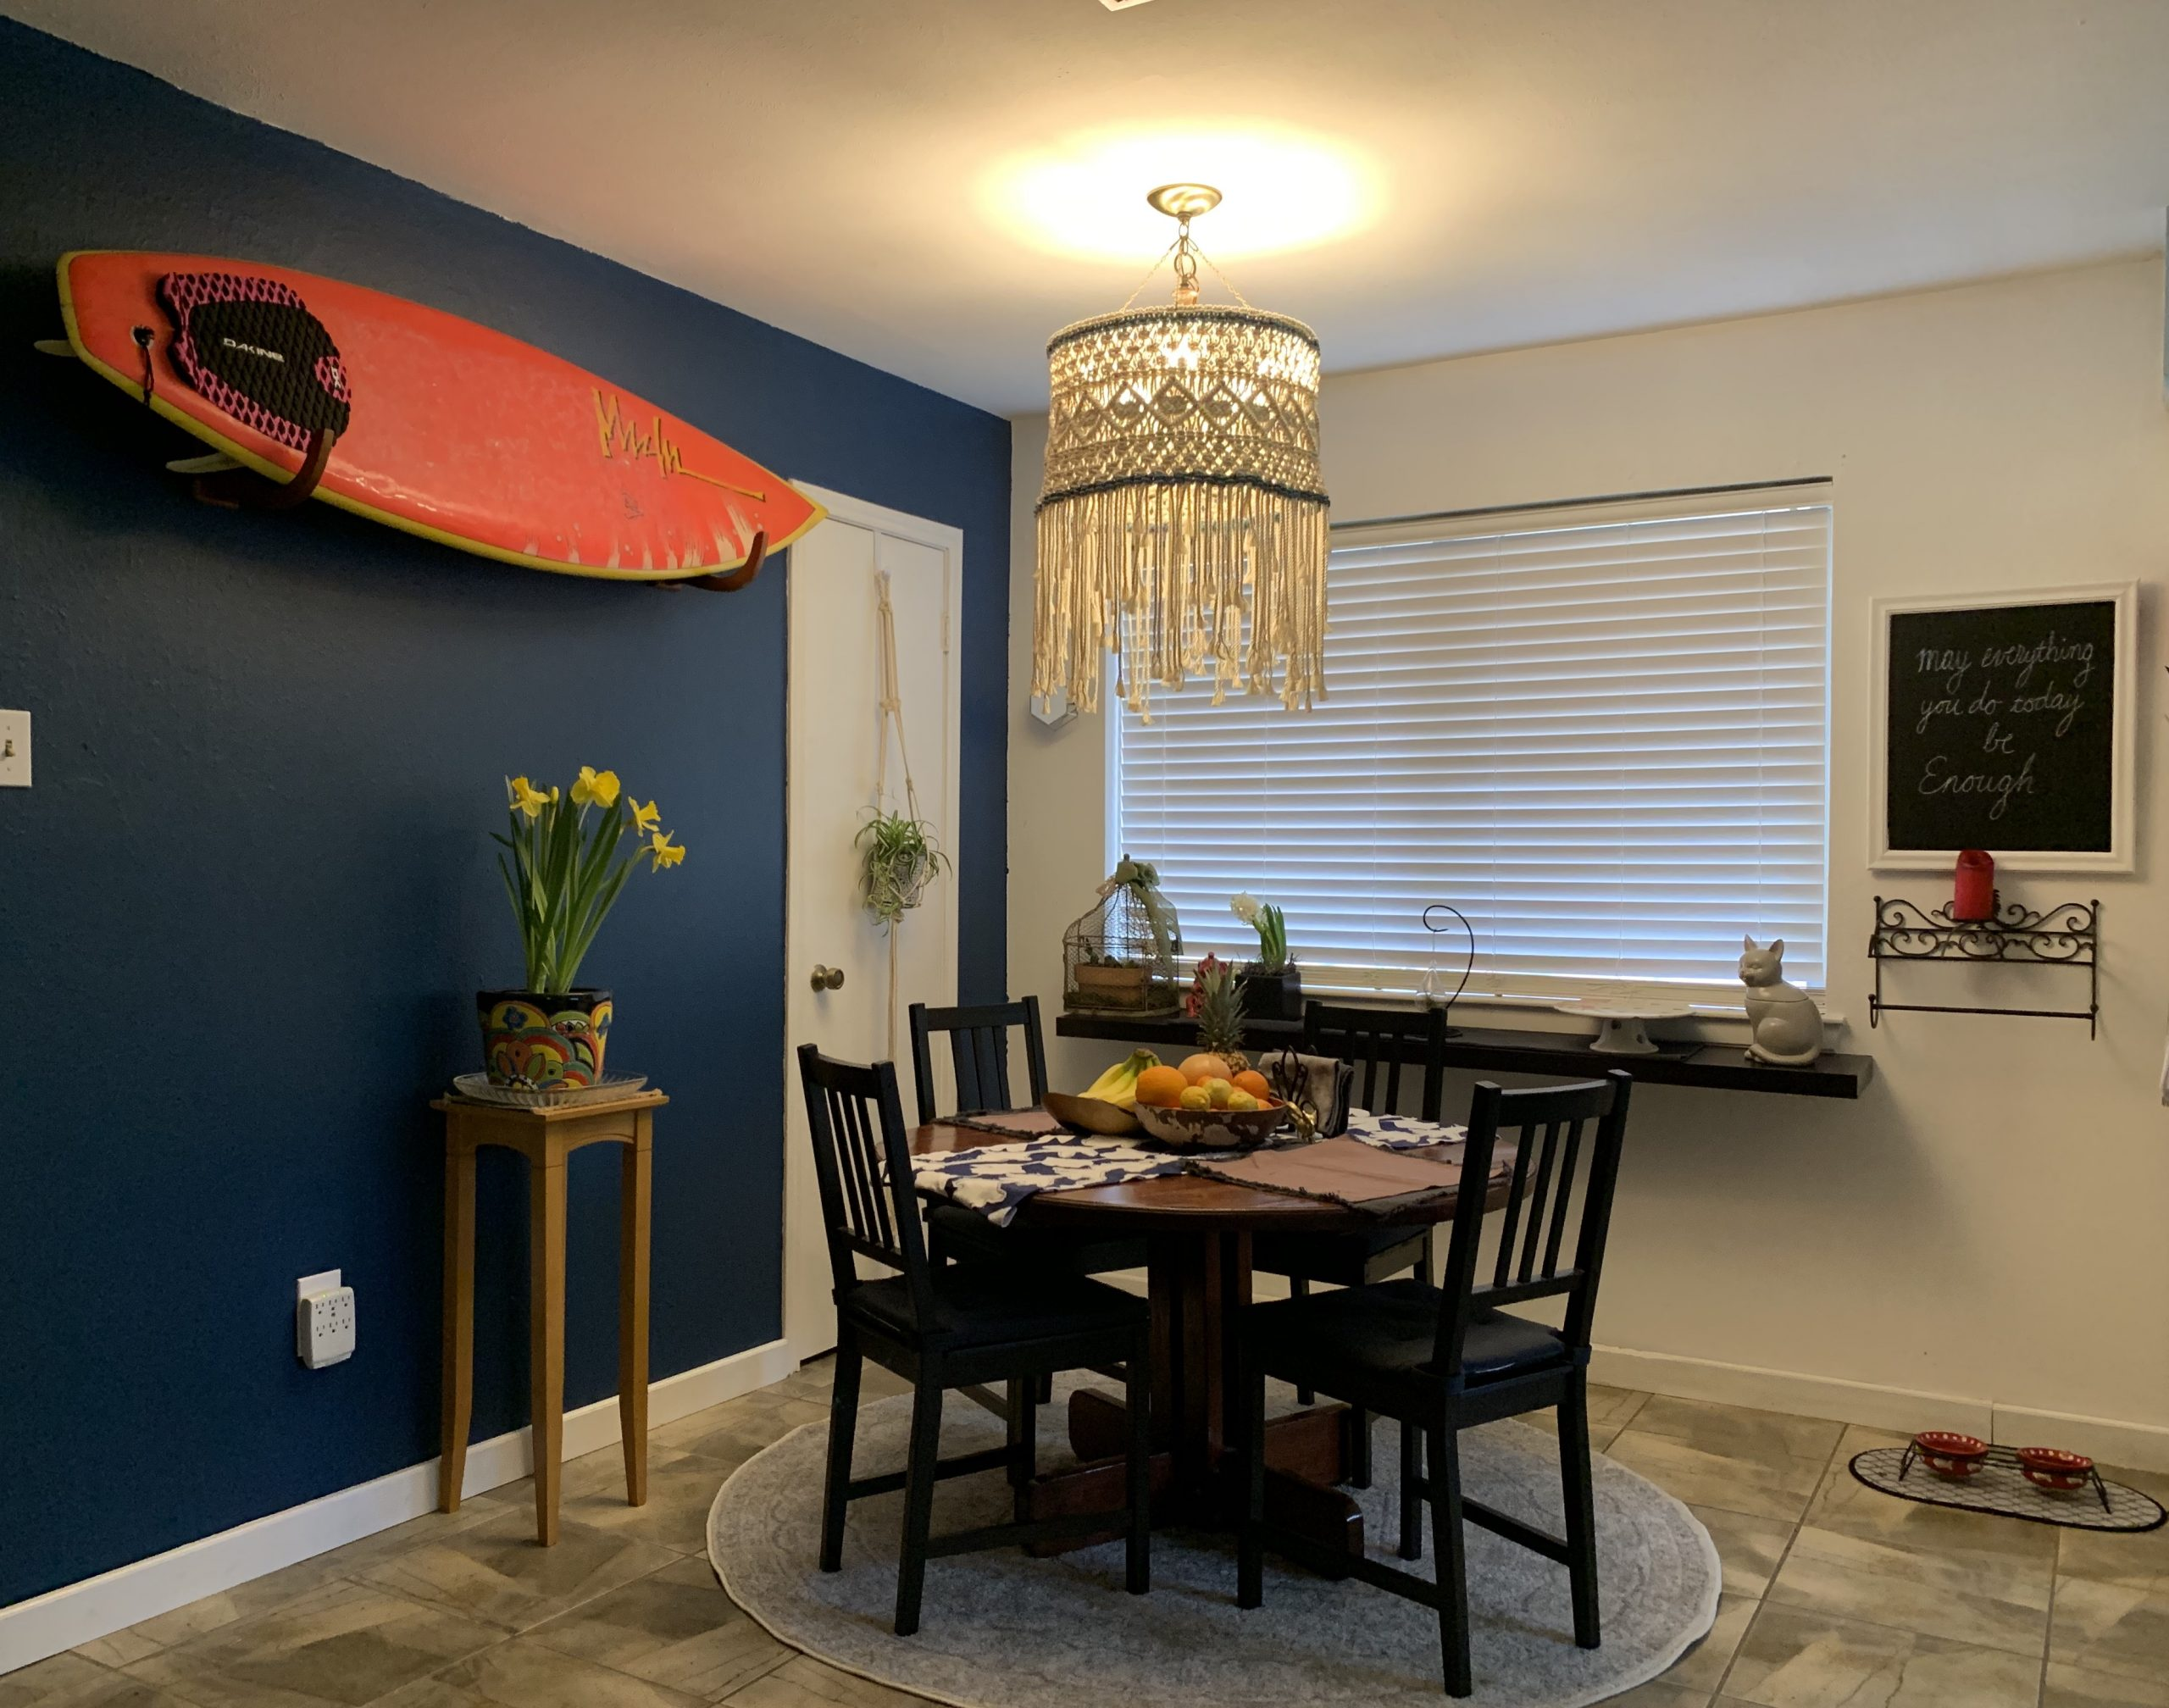 Diy Macrame Hanging Chandelier Lampshade Likely By Sea